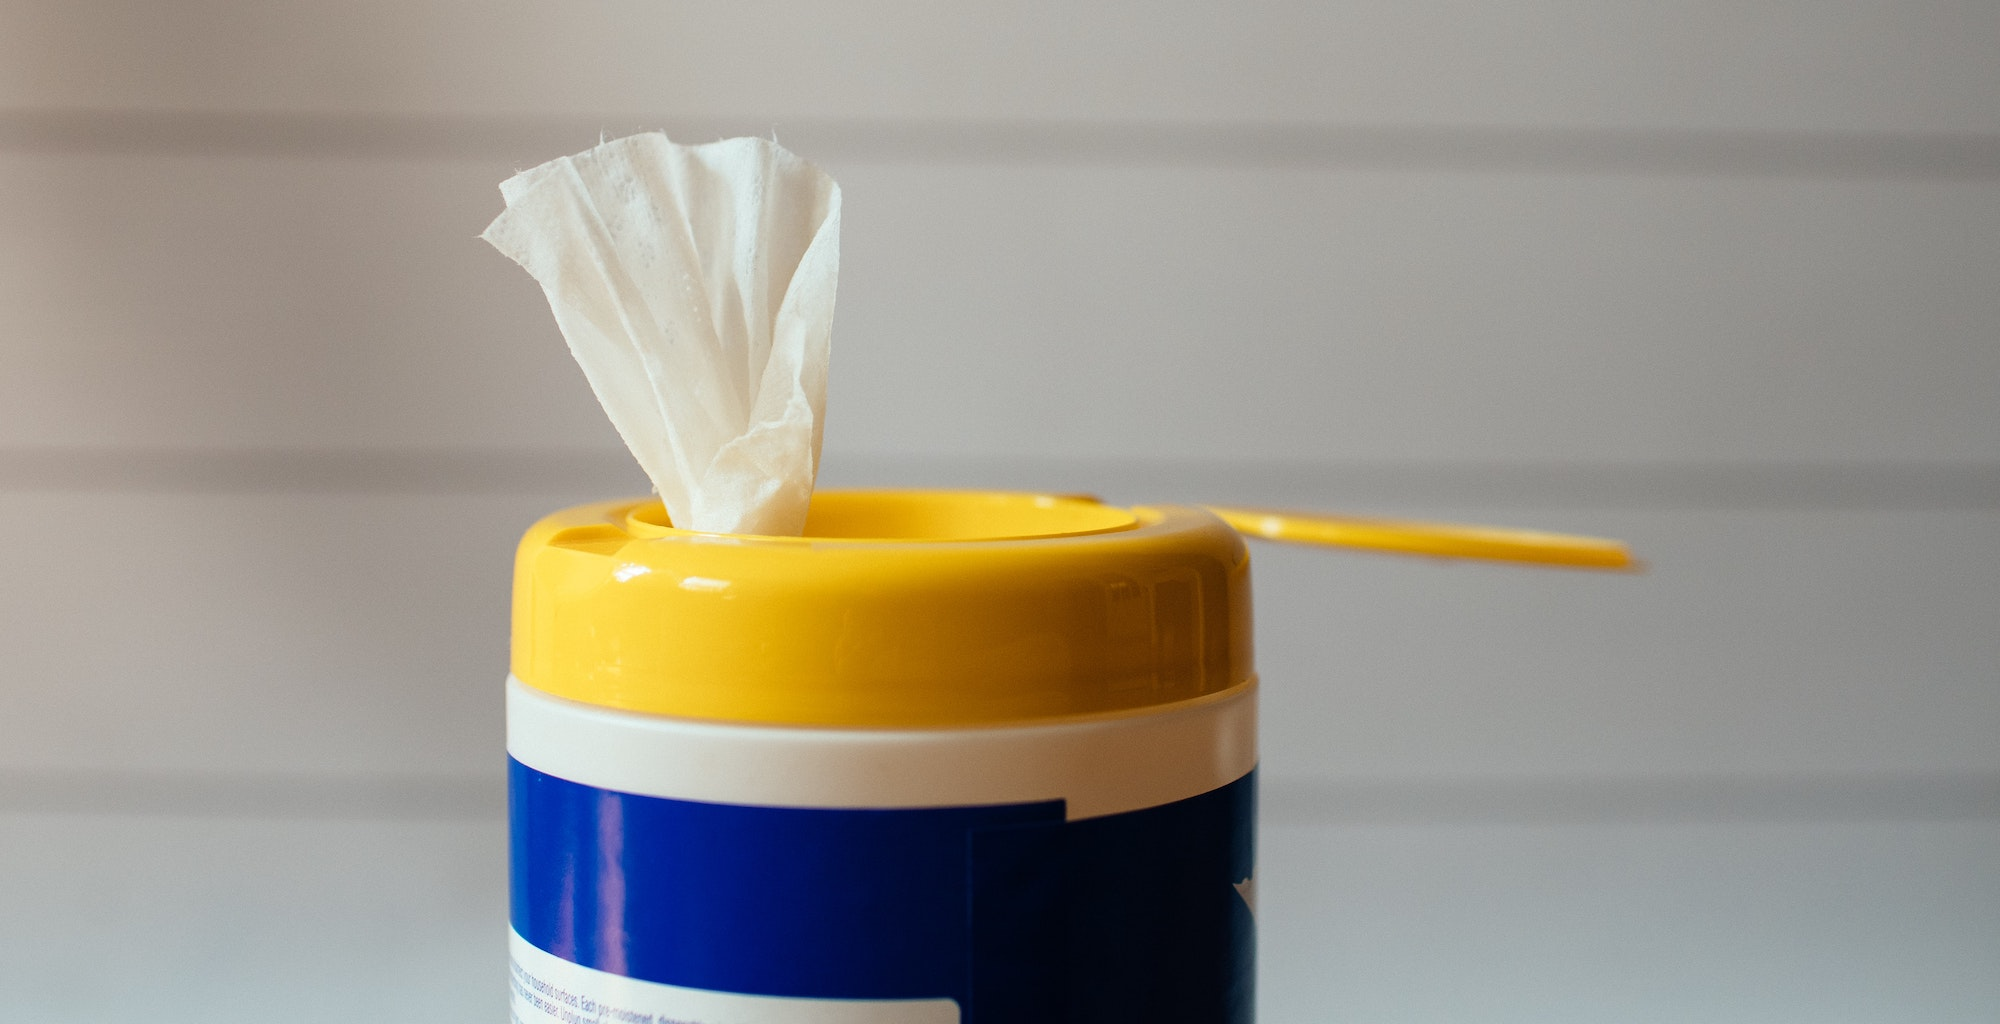 How to Safely Reduce, Reuse, Recycle—and Sanitize